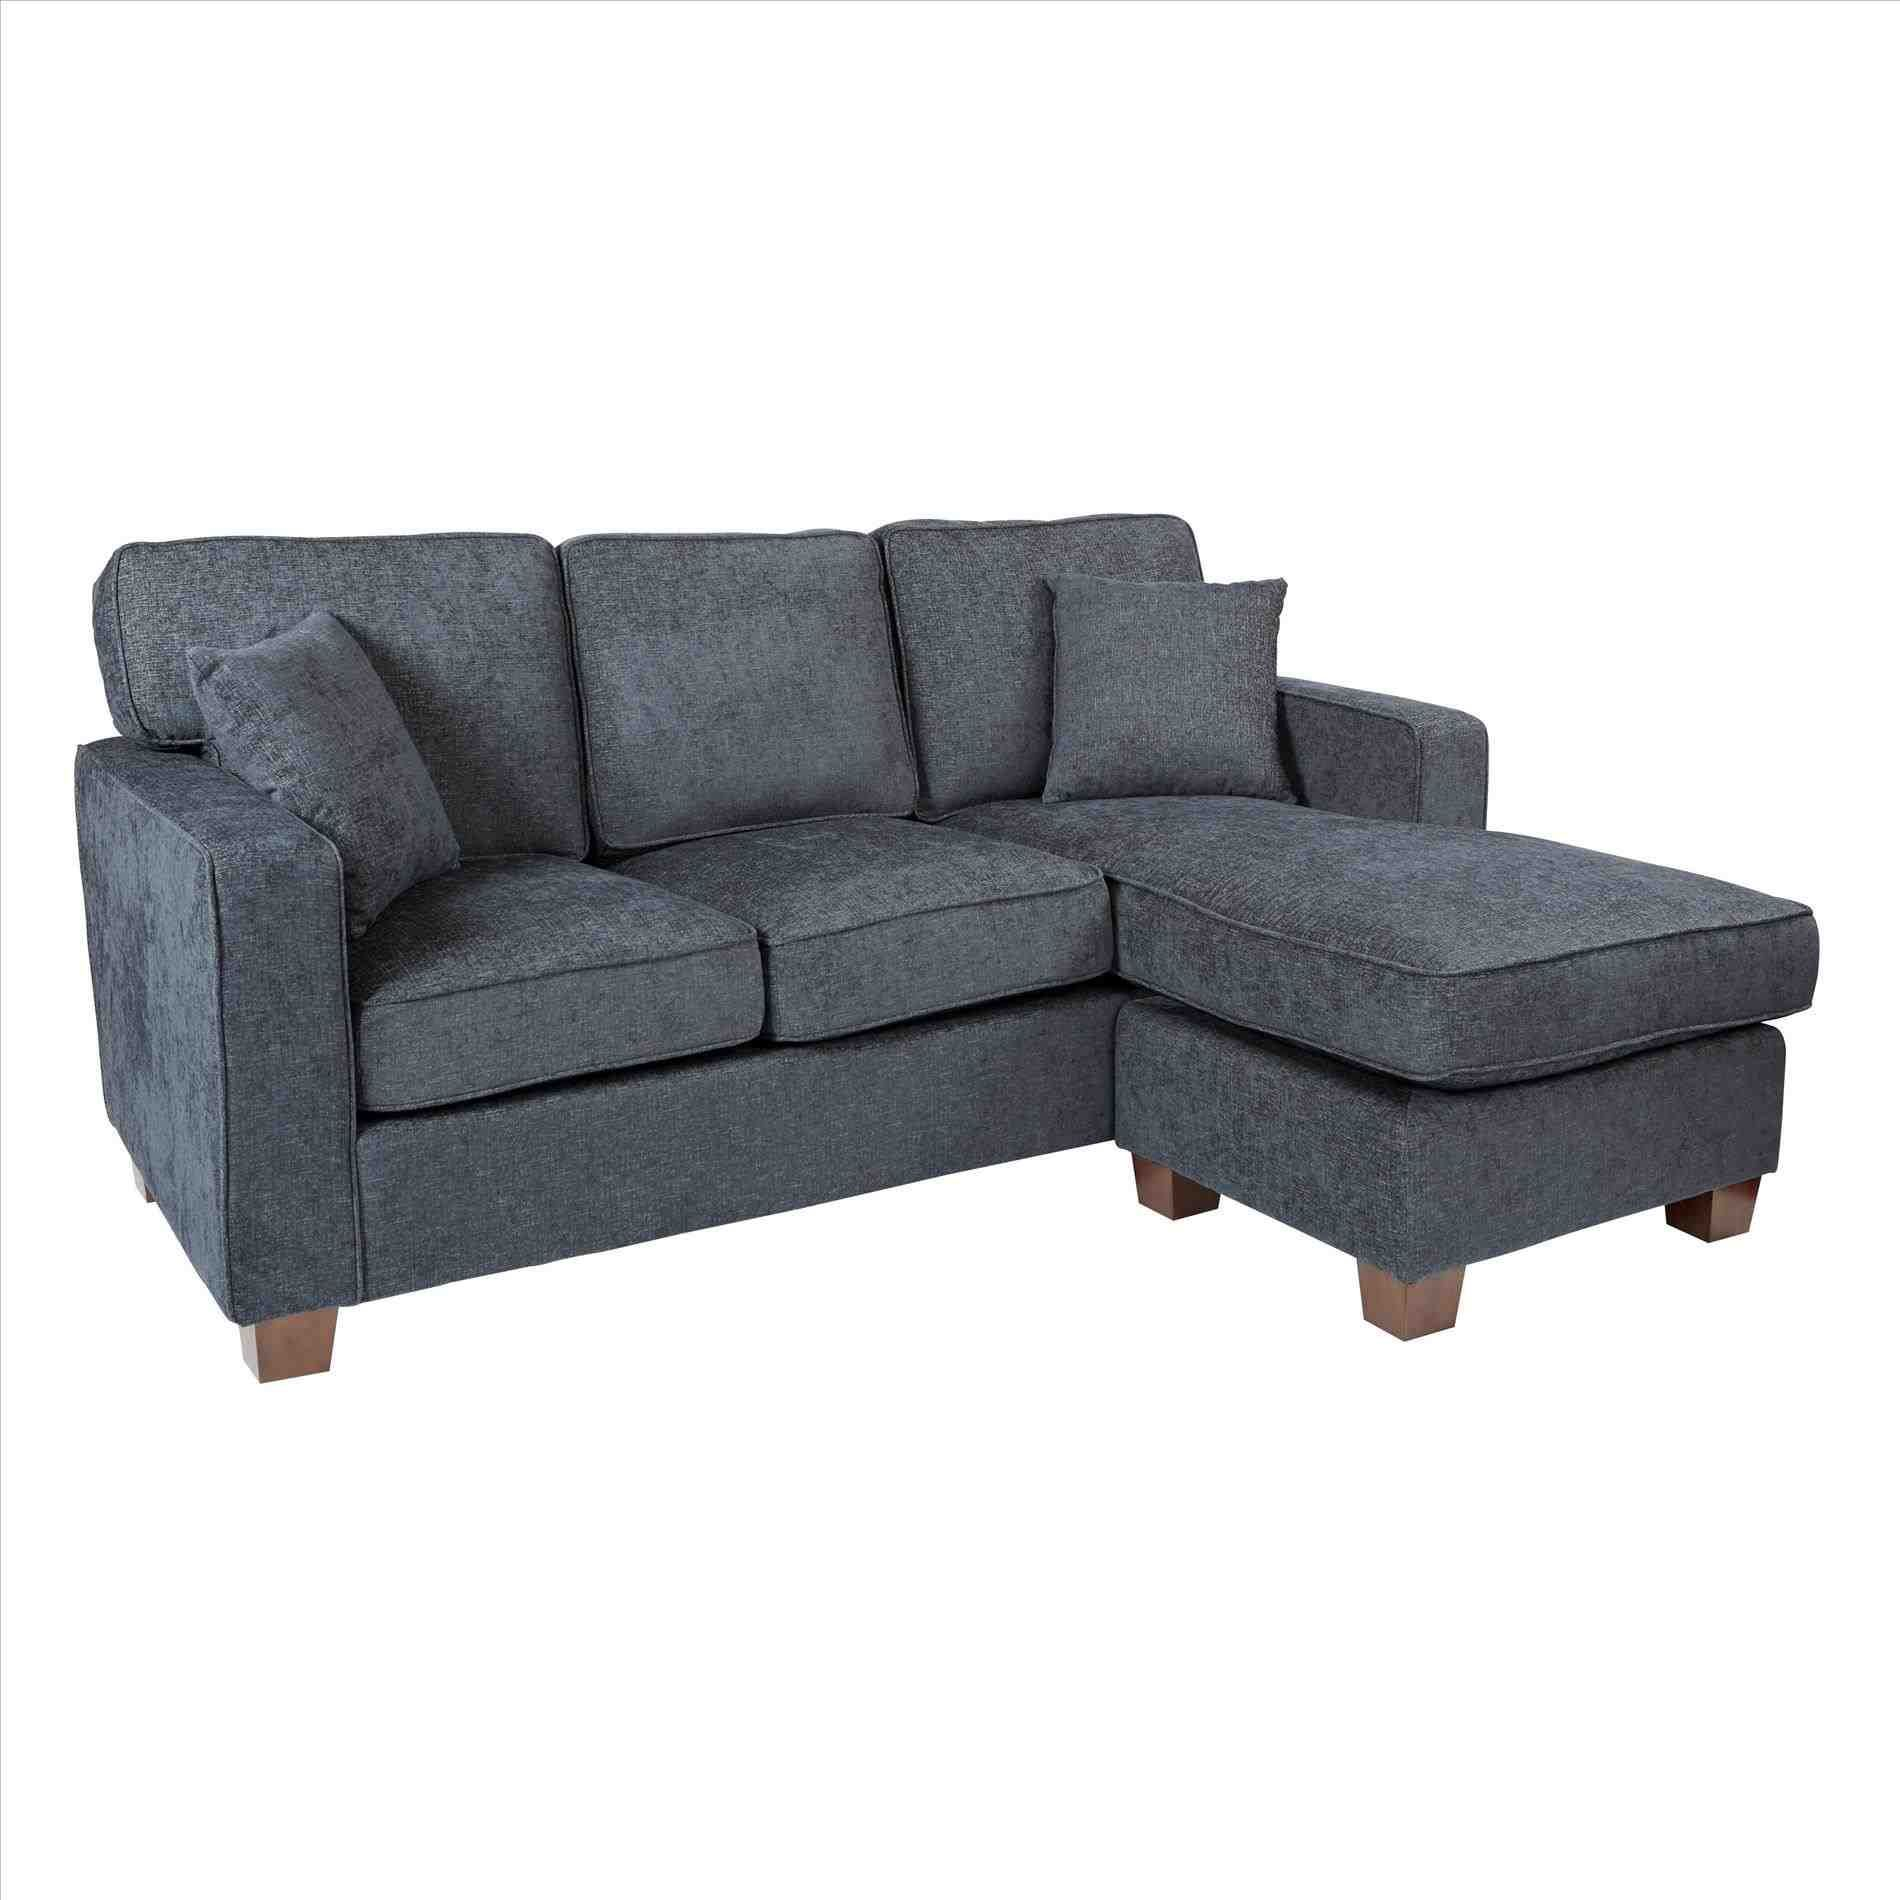 Sectionals Free Shipping Extraordinary Reclinable Sectional Sofas 82 For With